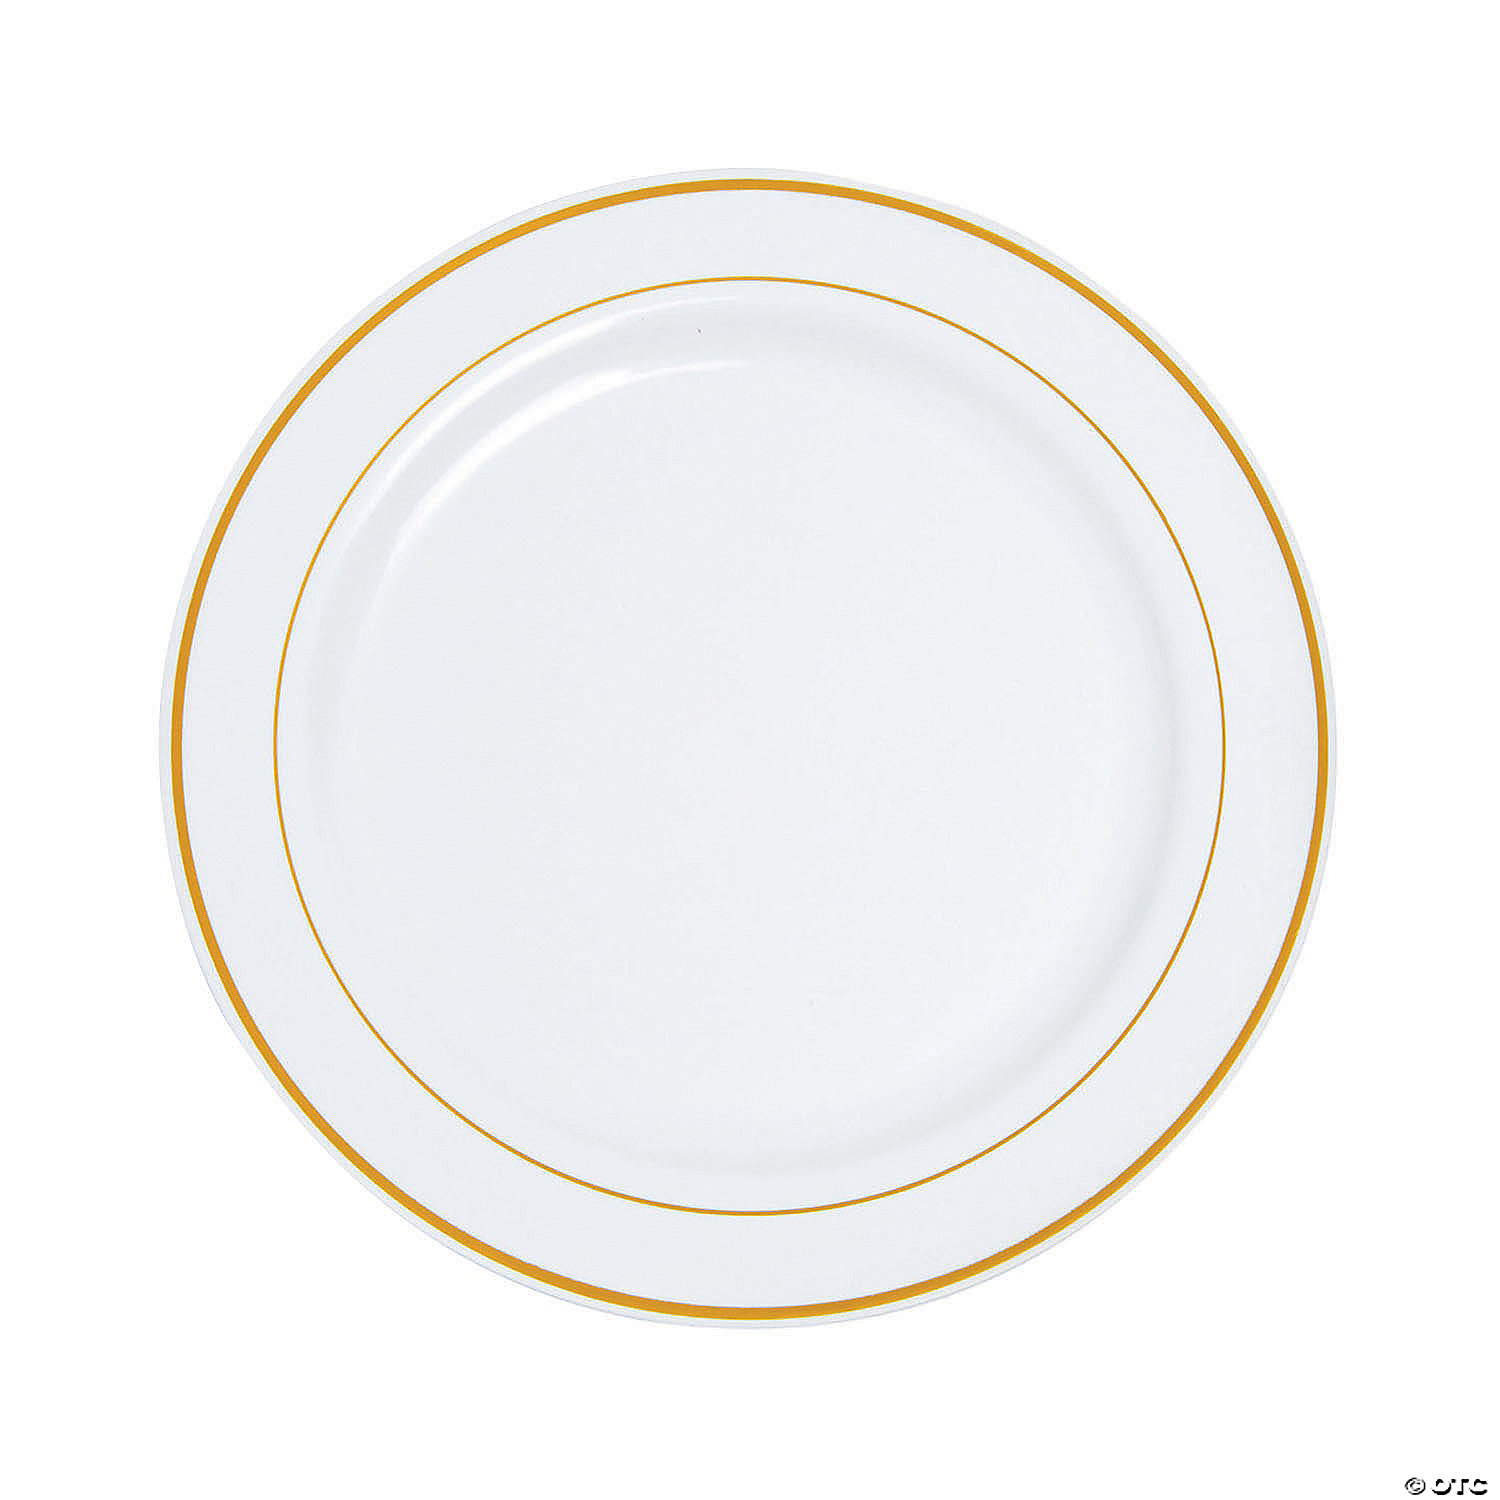 white-plastic-dinner-plates-with-gold-edging ...  sc 1 st  Oriental Trading & White Plastic Dinner Plates with Gold Edging